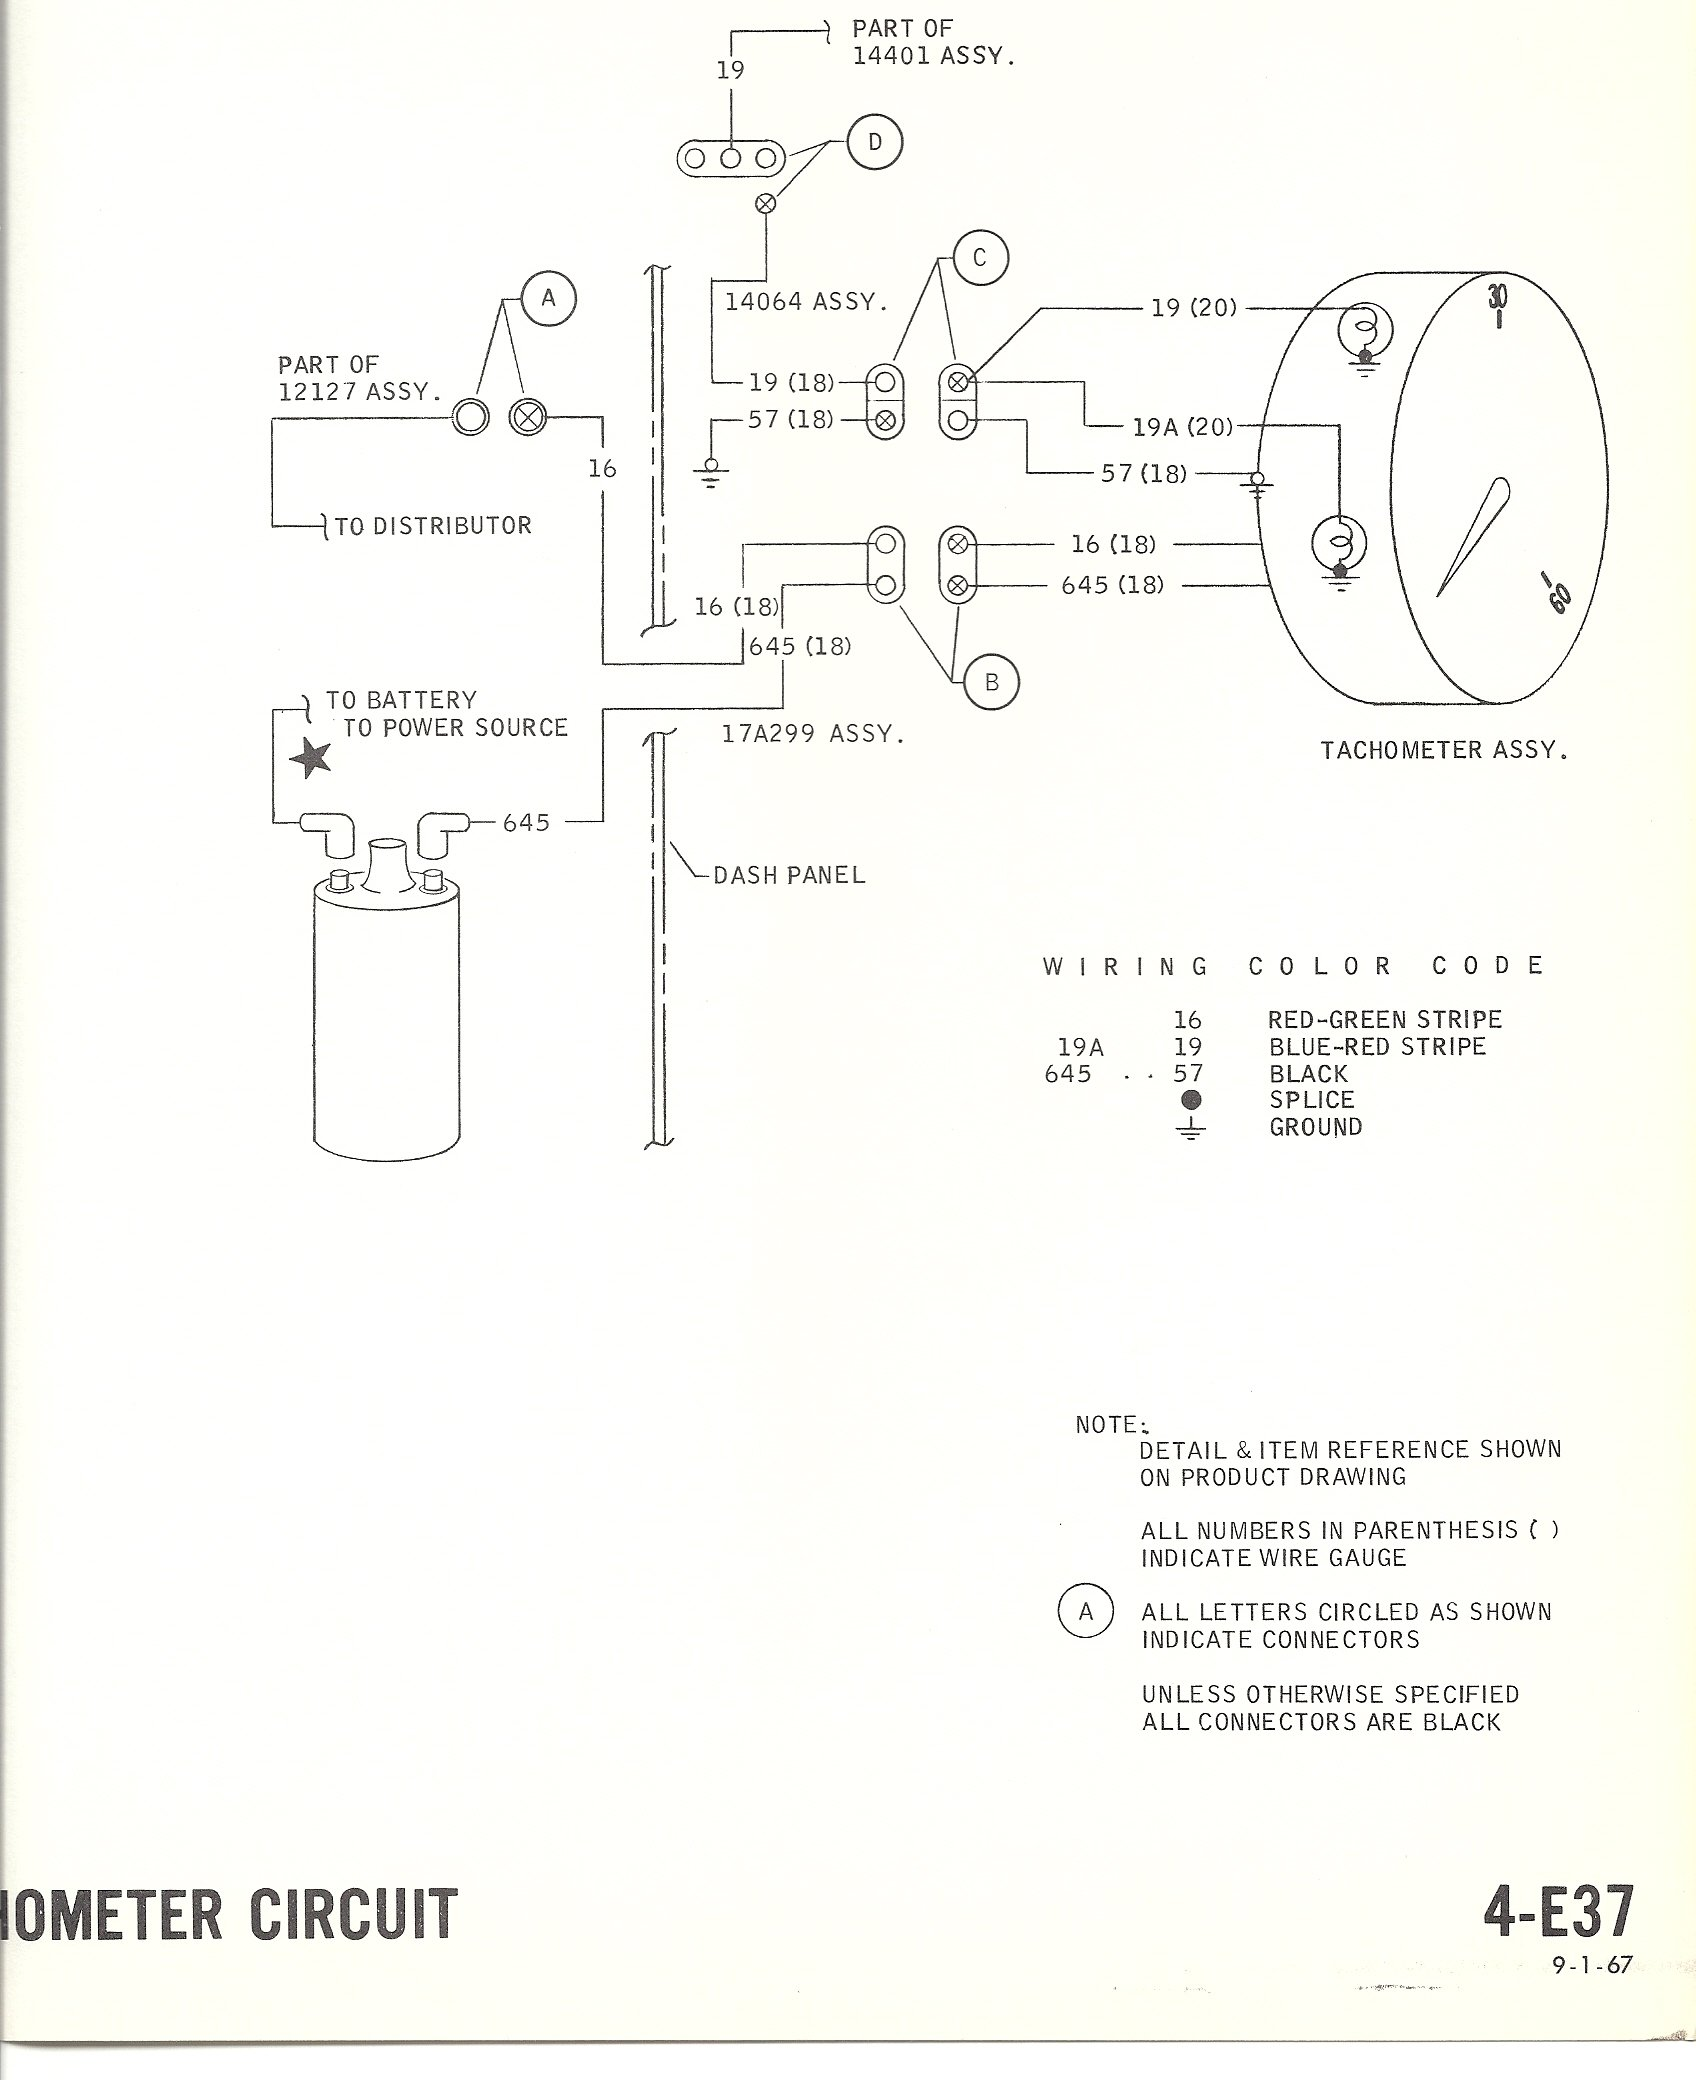 hight resolution of 1980 mustang tach wiring diagram wiring diagrams 1975 mustang tachometer wiring